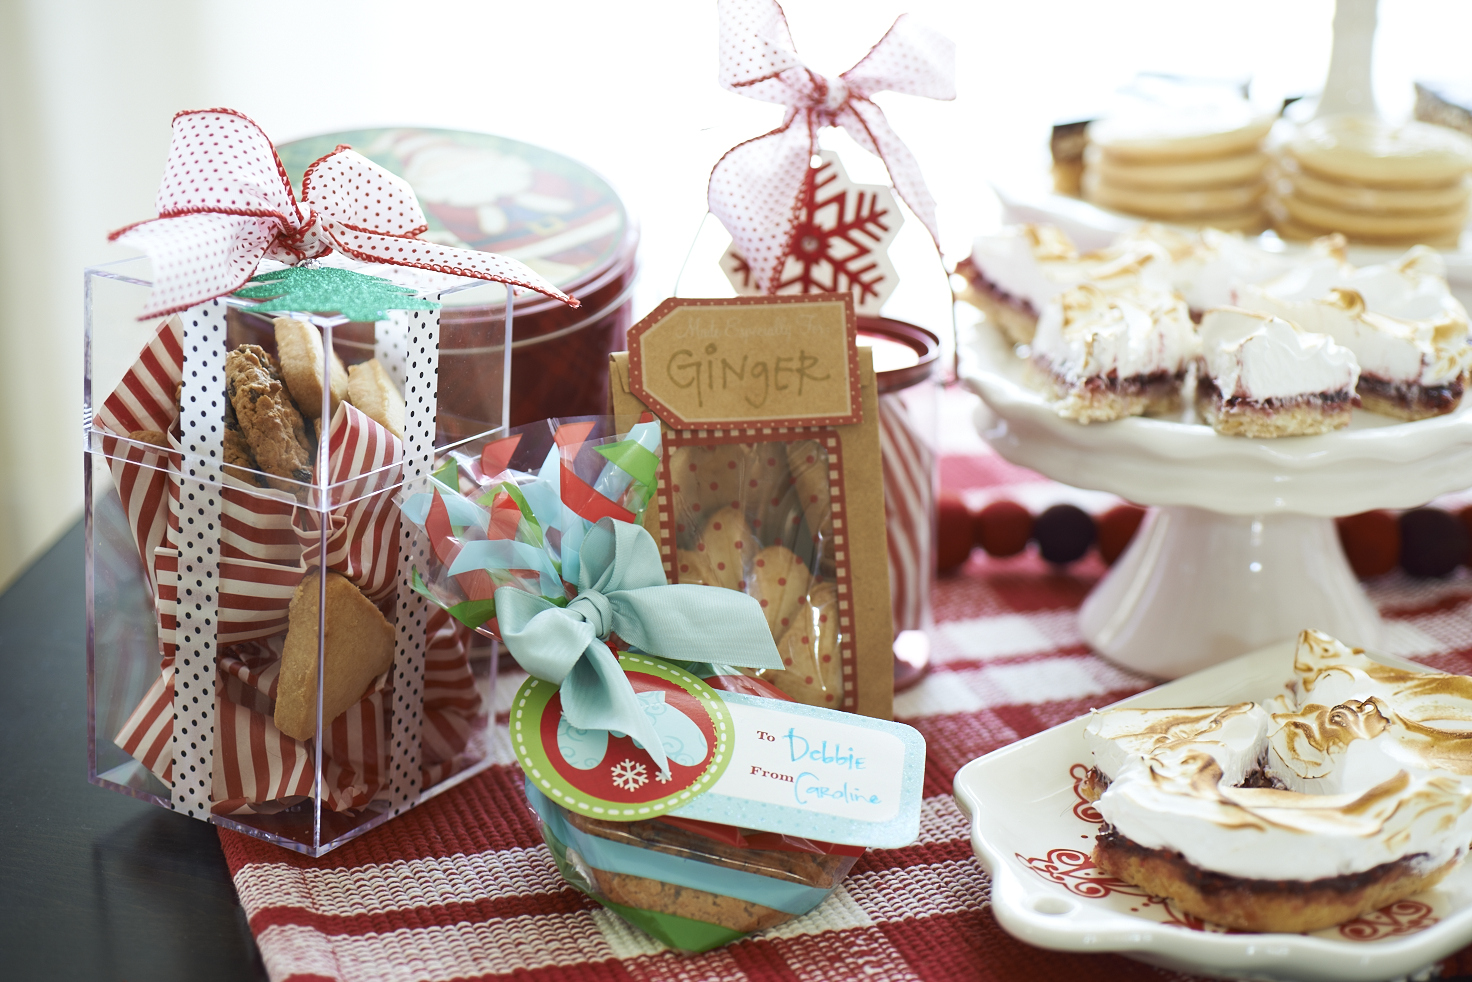 Have plenty of supplies available for guests to take their cookies home after the party.